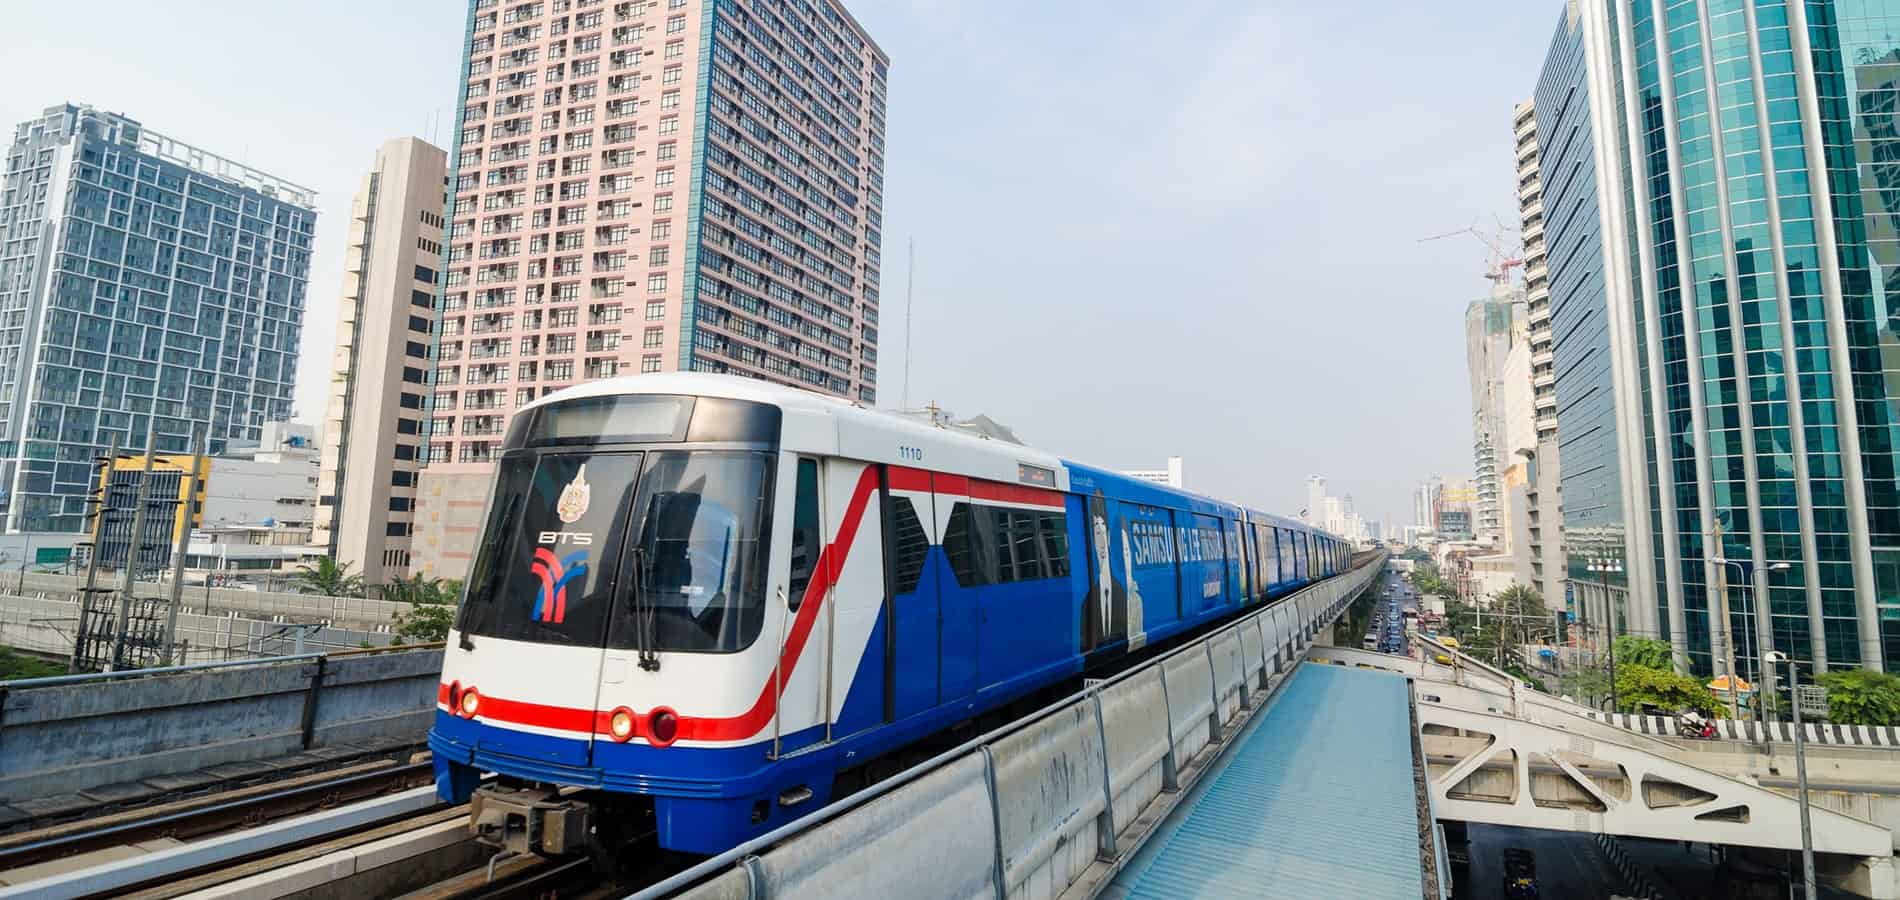 travel-with-no-money---use-public-transport-min